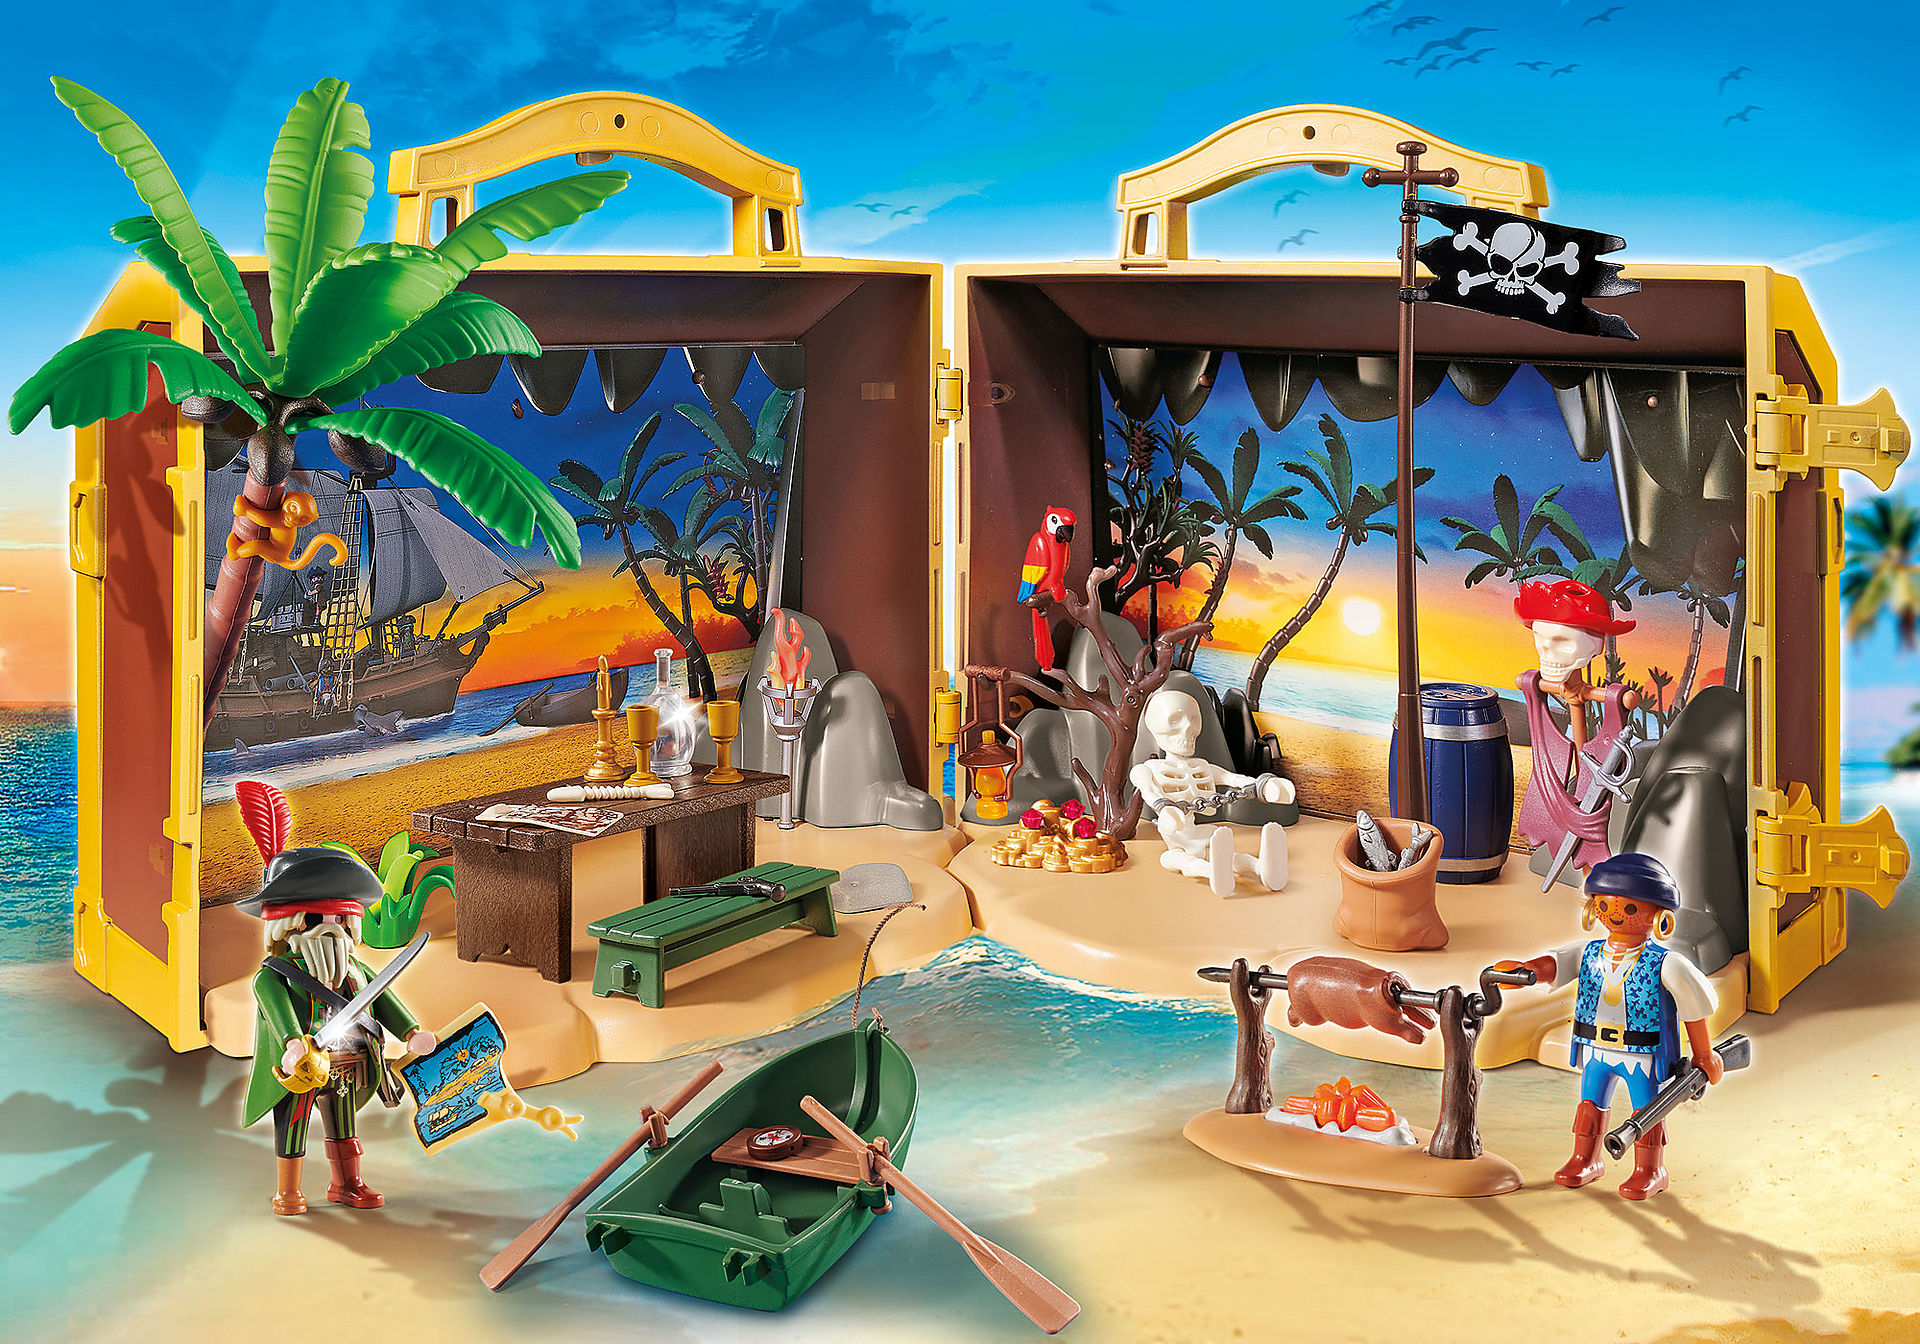 http://media.playmobil.com/i/playmobil/70150_product_detail/Meeneem pirateneiland